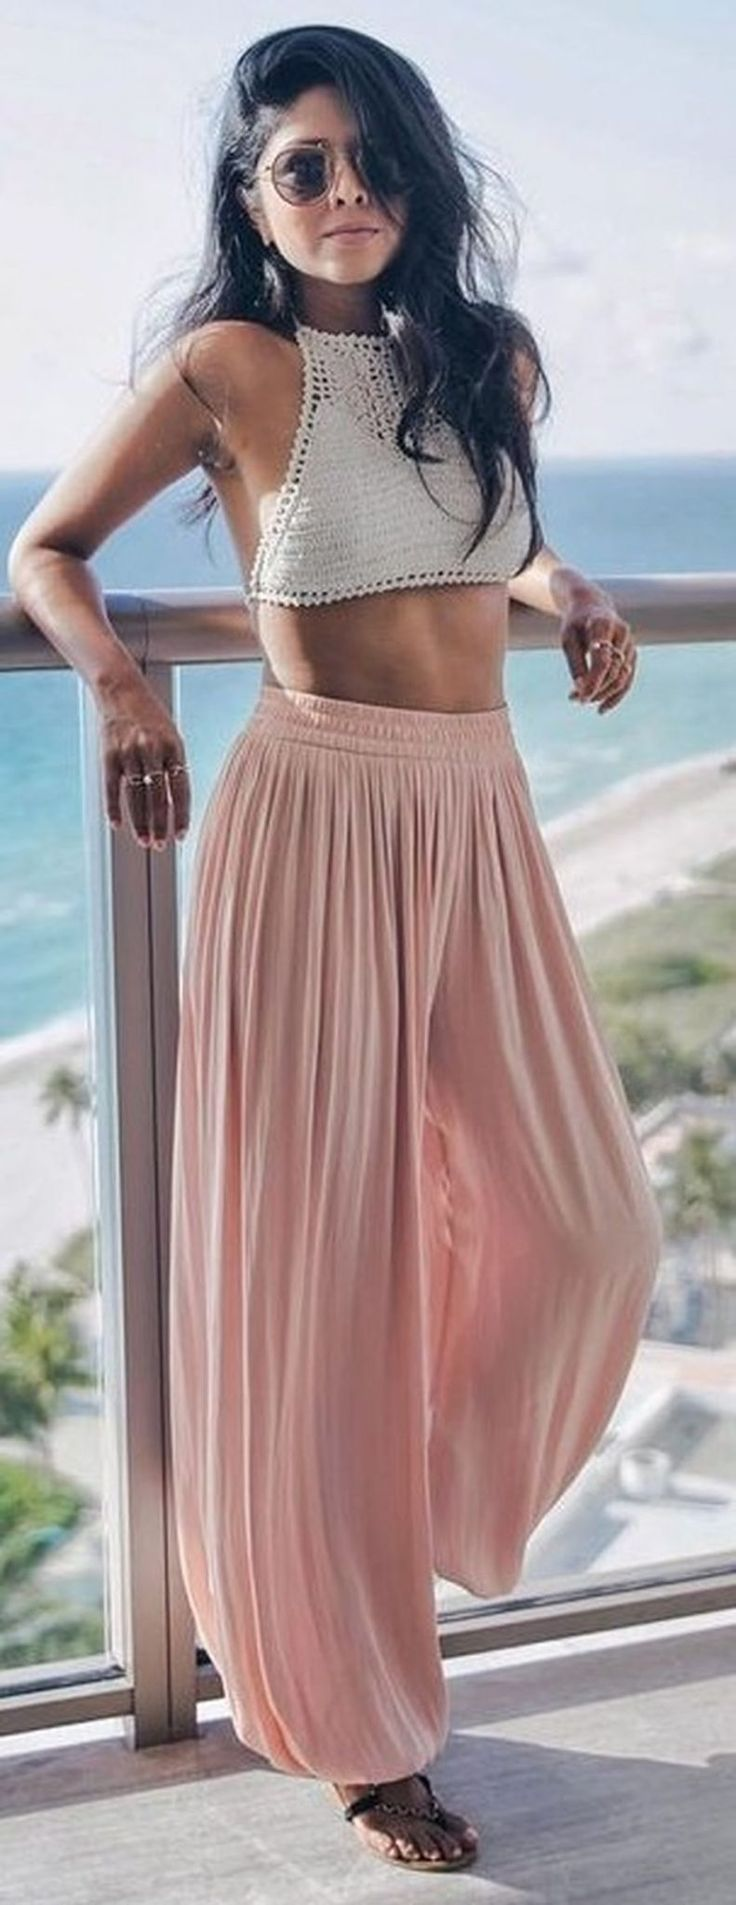 Best 25+ Casual Beach Outfit Ideas On Pinterest